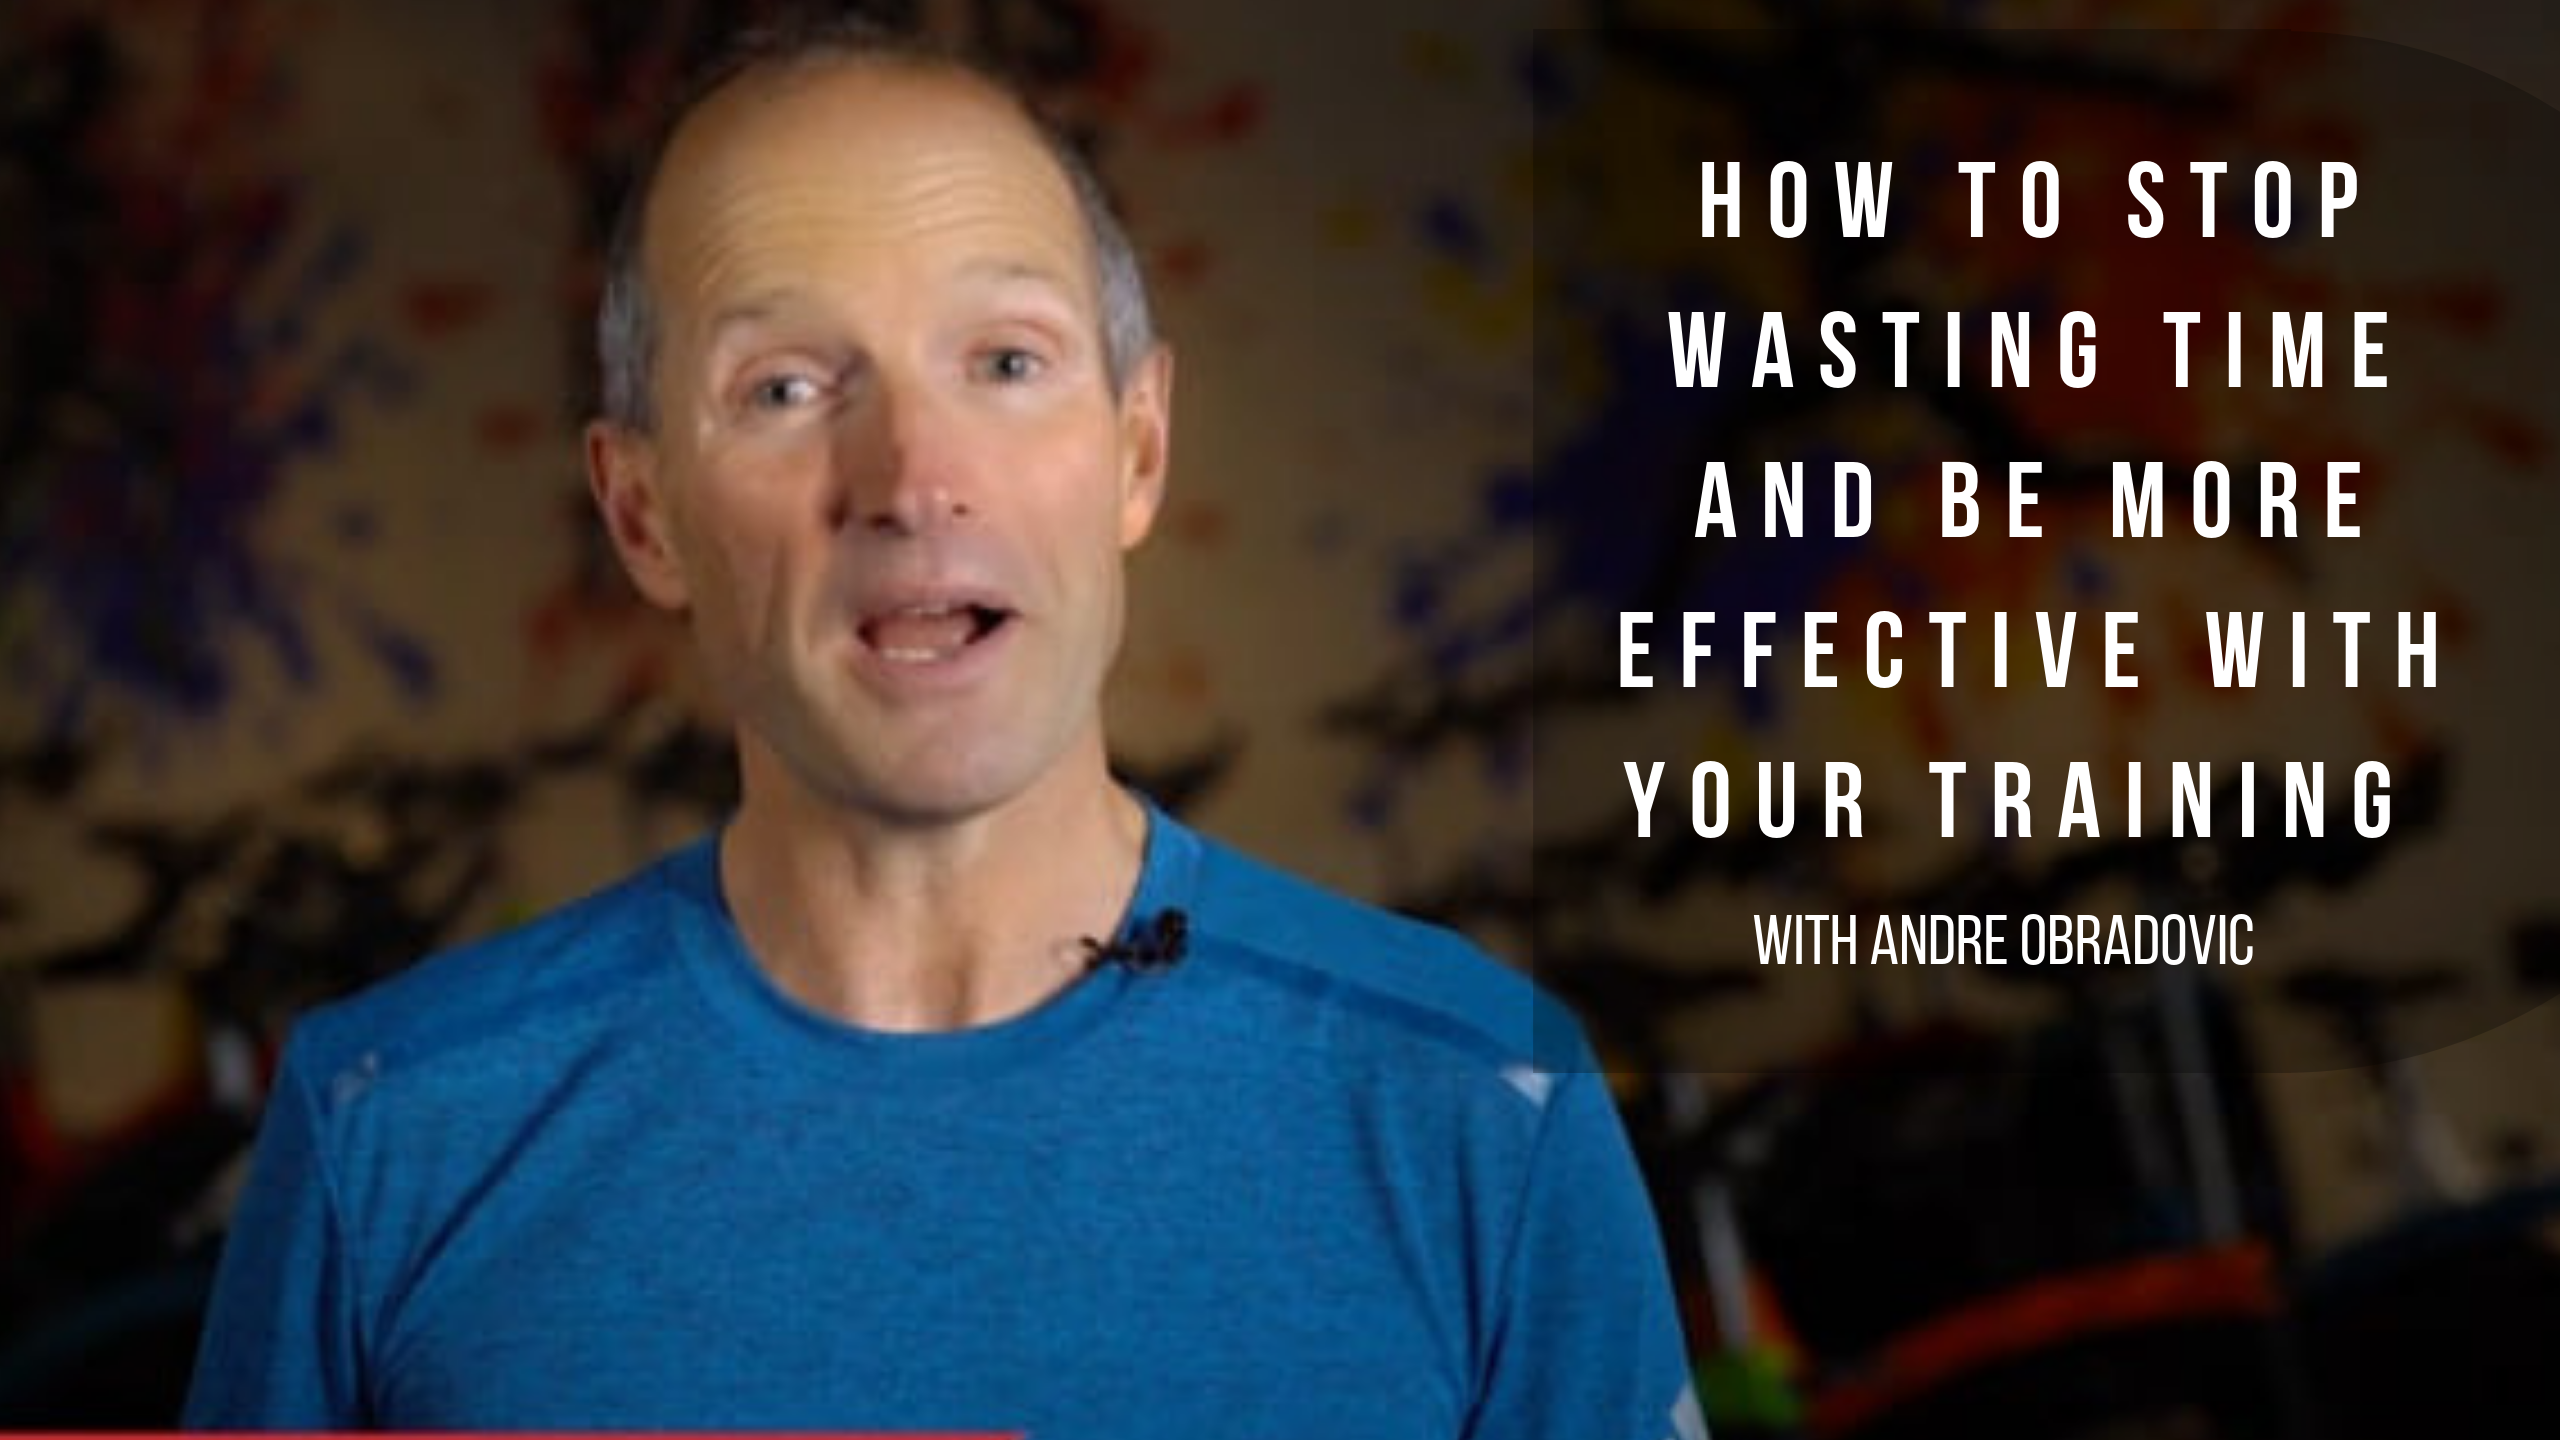 How To Stop Wasting Time And Be More Effective With Your Training With Andre Obradovic